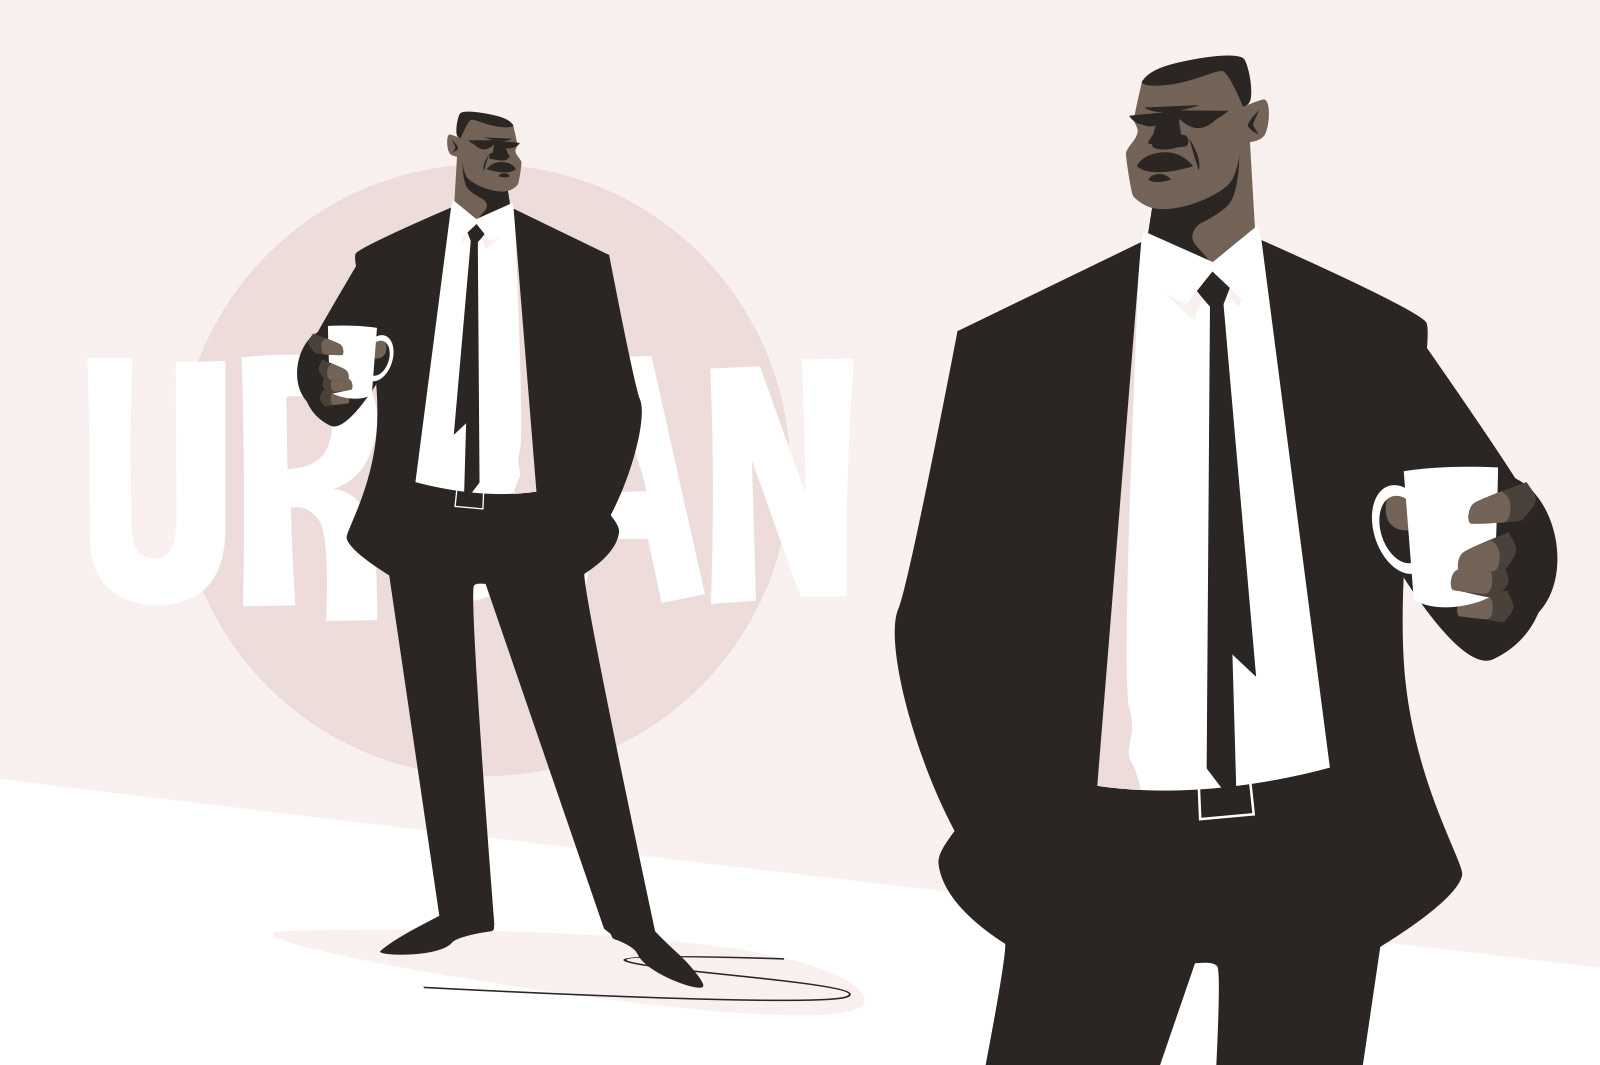 Urban afroman in suit vector illustration. Man in stylish luxury costume holding cup of drink flat style. Urban inscription. Fashion concept. Isolated on pink background